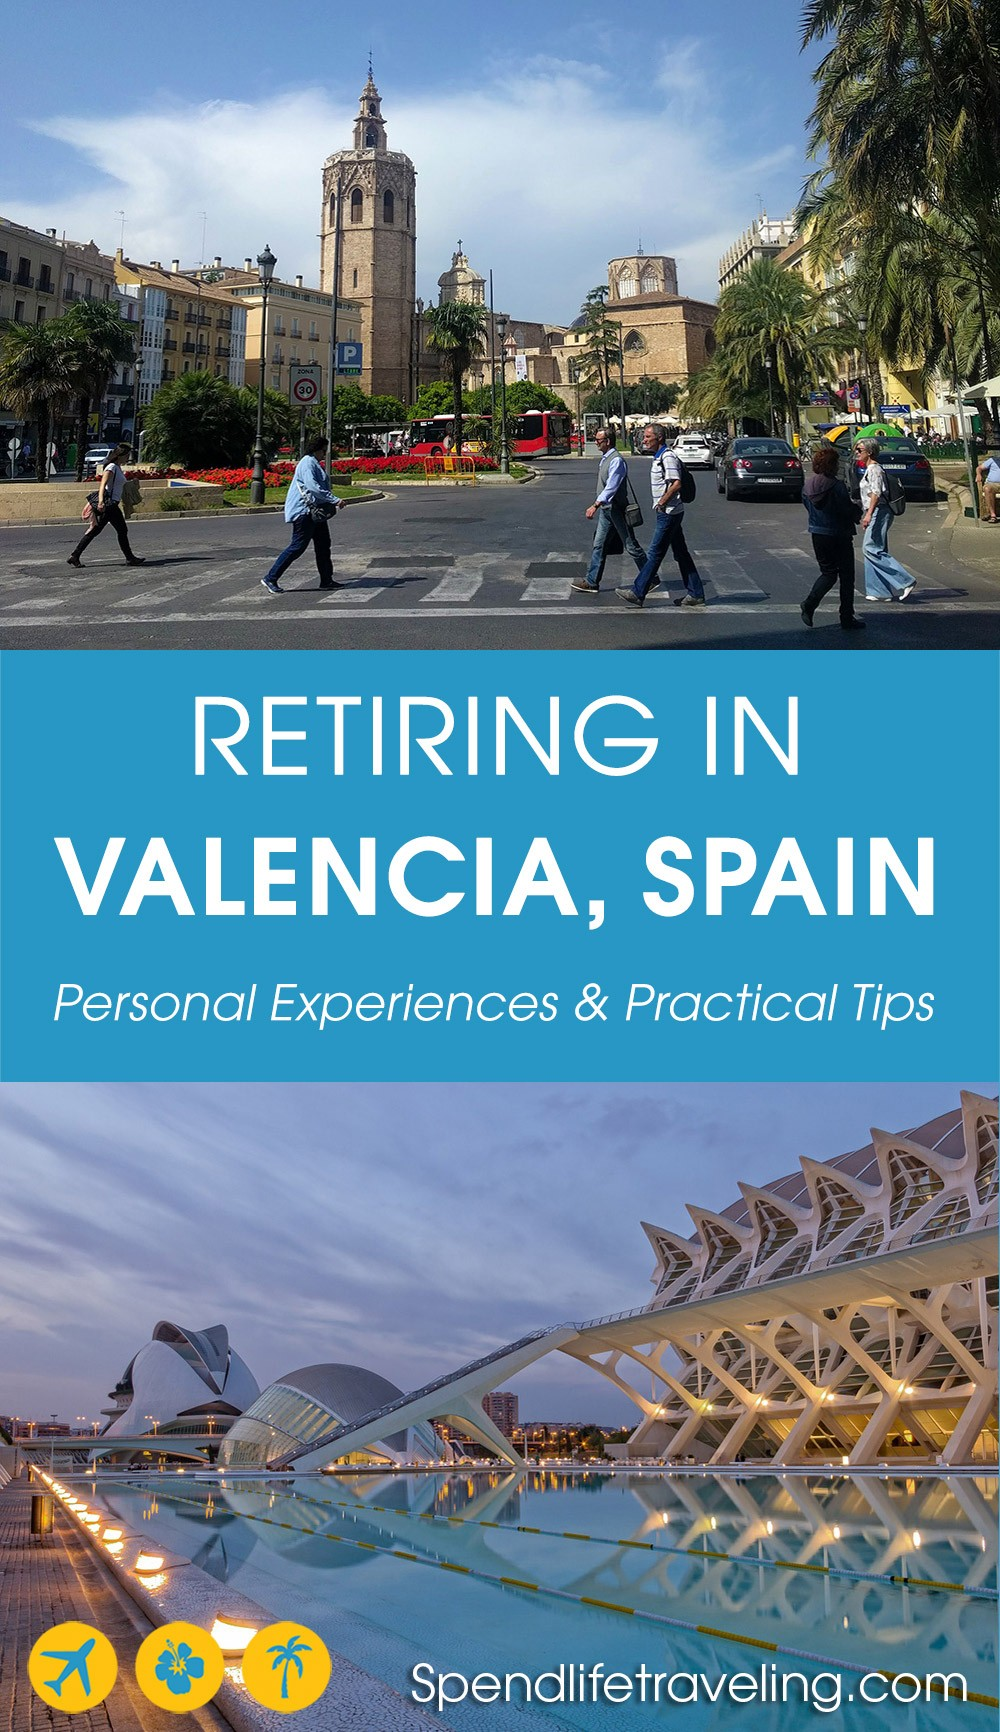 Are you thinking about retiring in Spain? Maybe even specifically in #Valencia? This article contains 4 interviews with people who decided to move to Valencia to retire and want to share their tips & experiences. #retireabroad